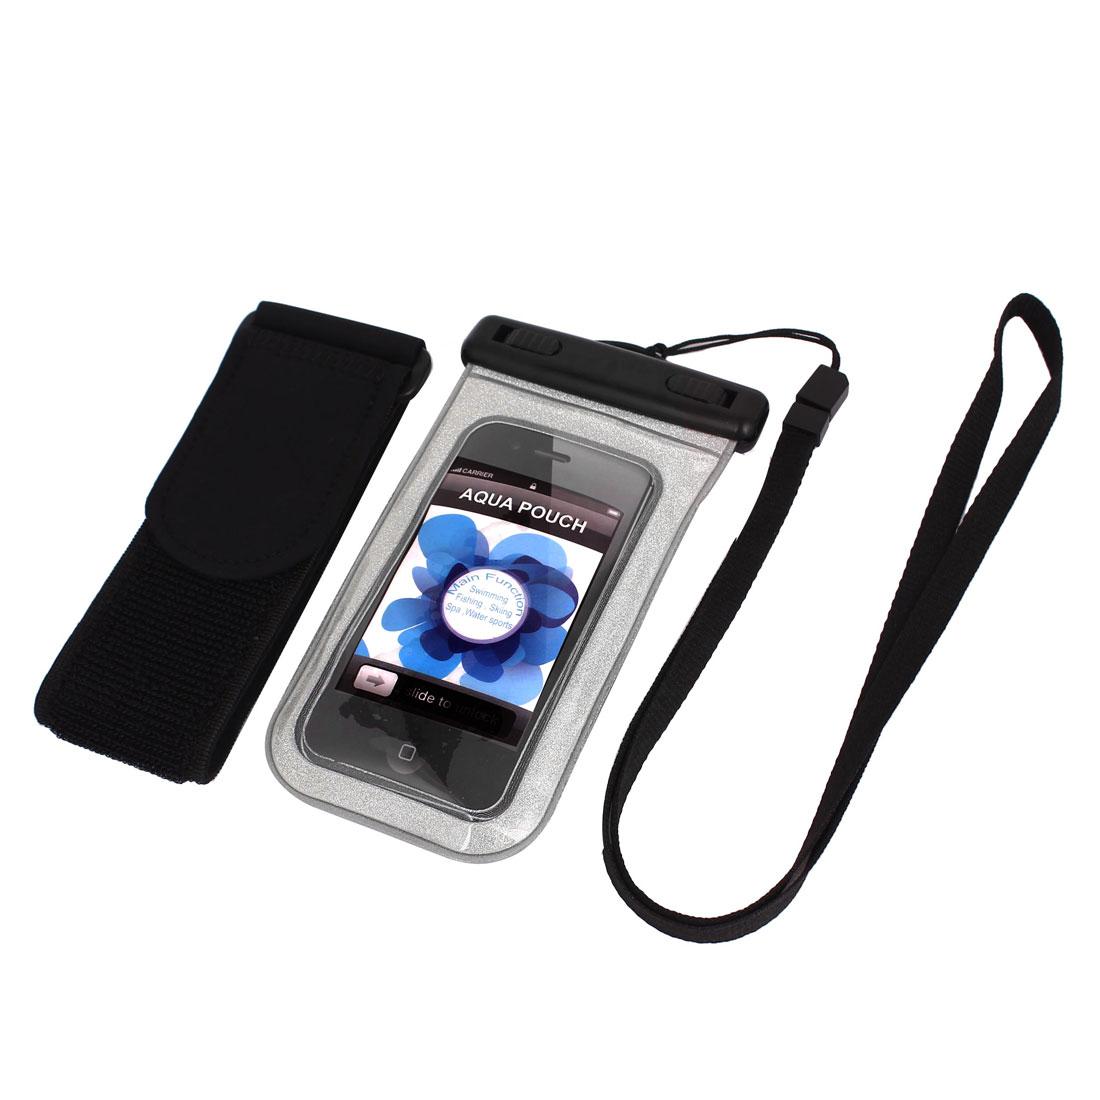 "Waterproof Swimming Pouch Bag Silver Tone for 4"" Cell Phone w Arm Band"